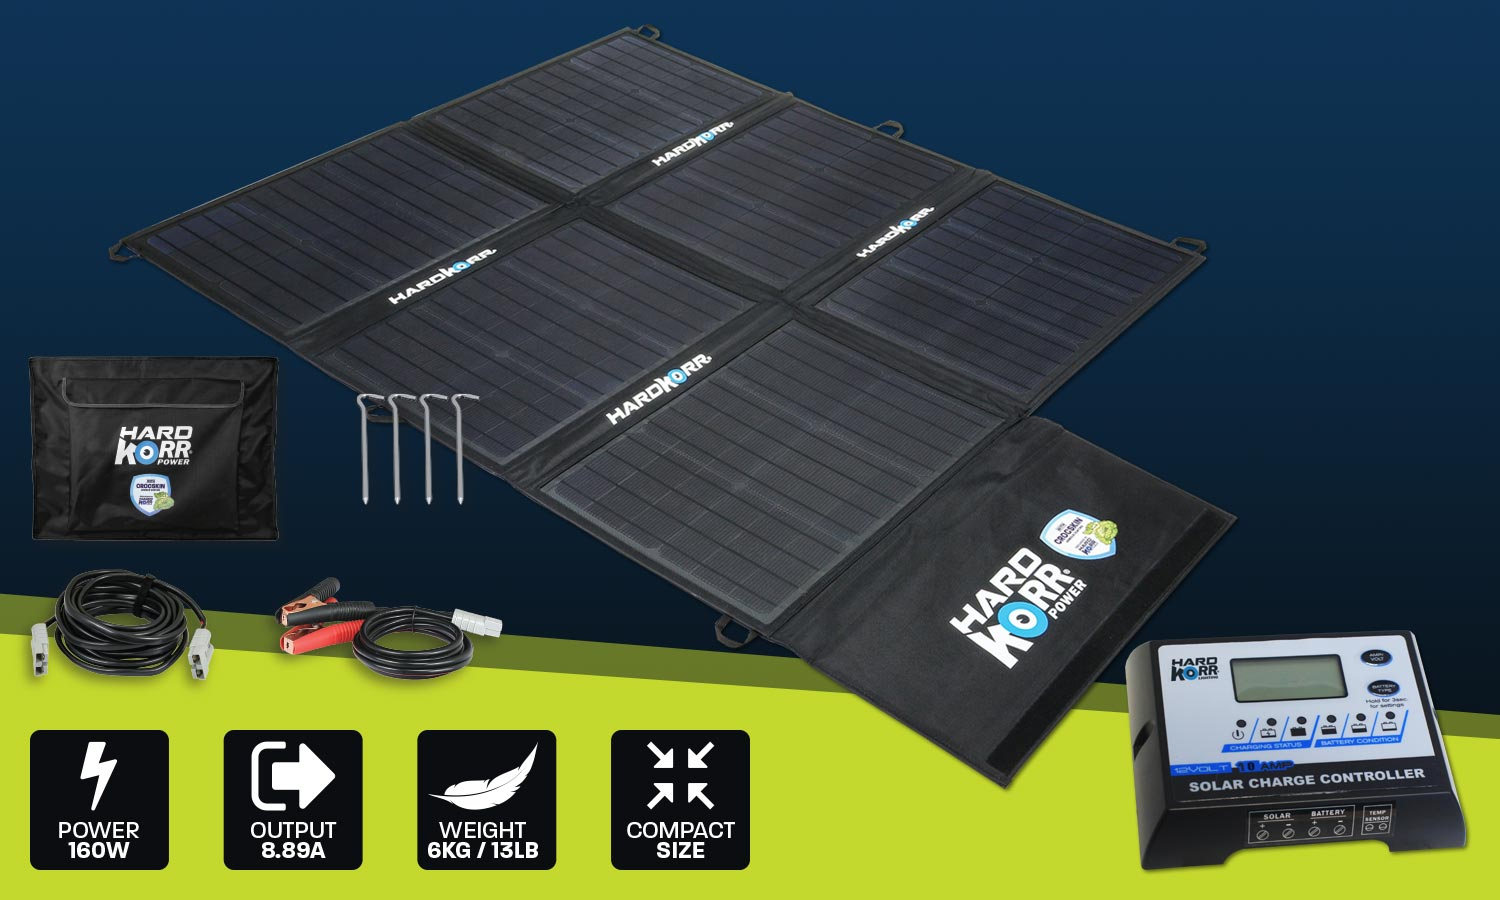 160w Light Weight Portable Solar Blanket With Crocskin Cell Armour Wiring A Small Battery Bank Panels Forum